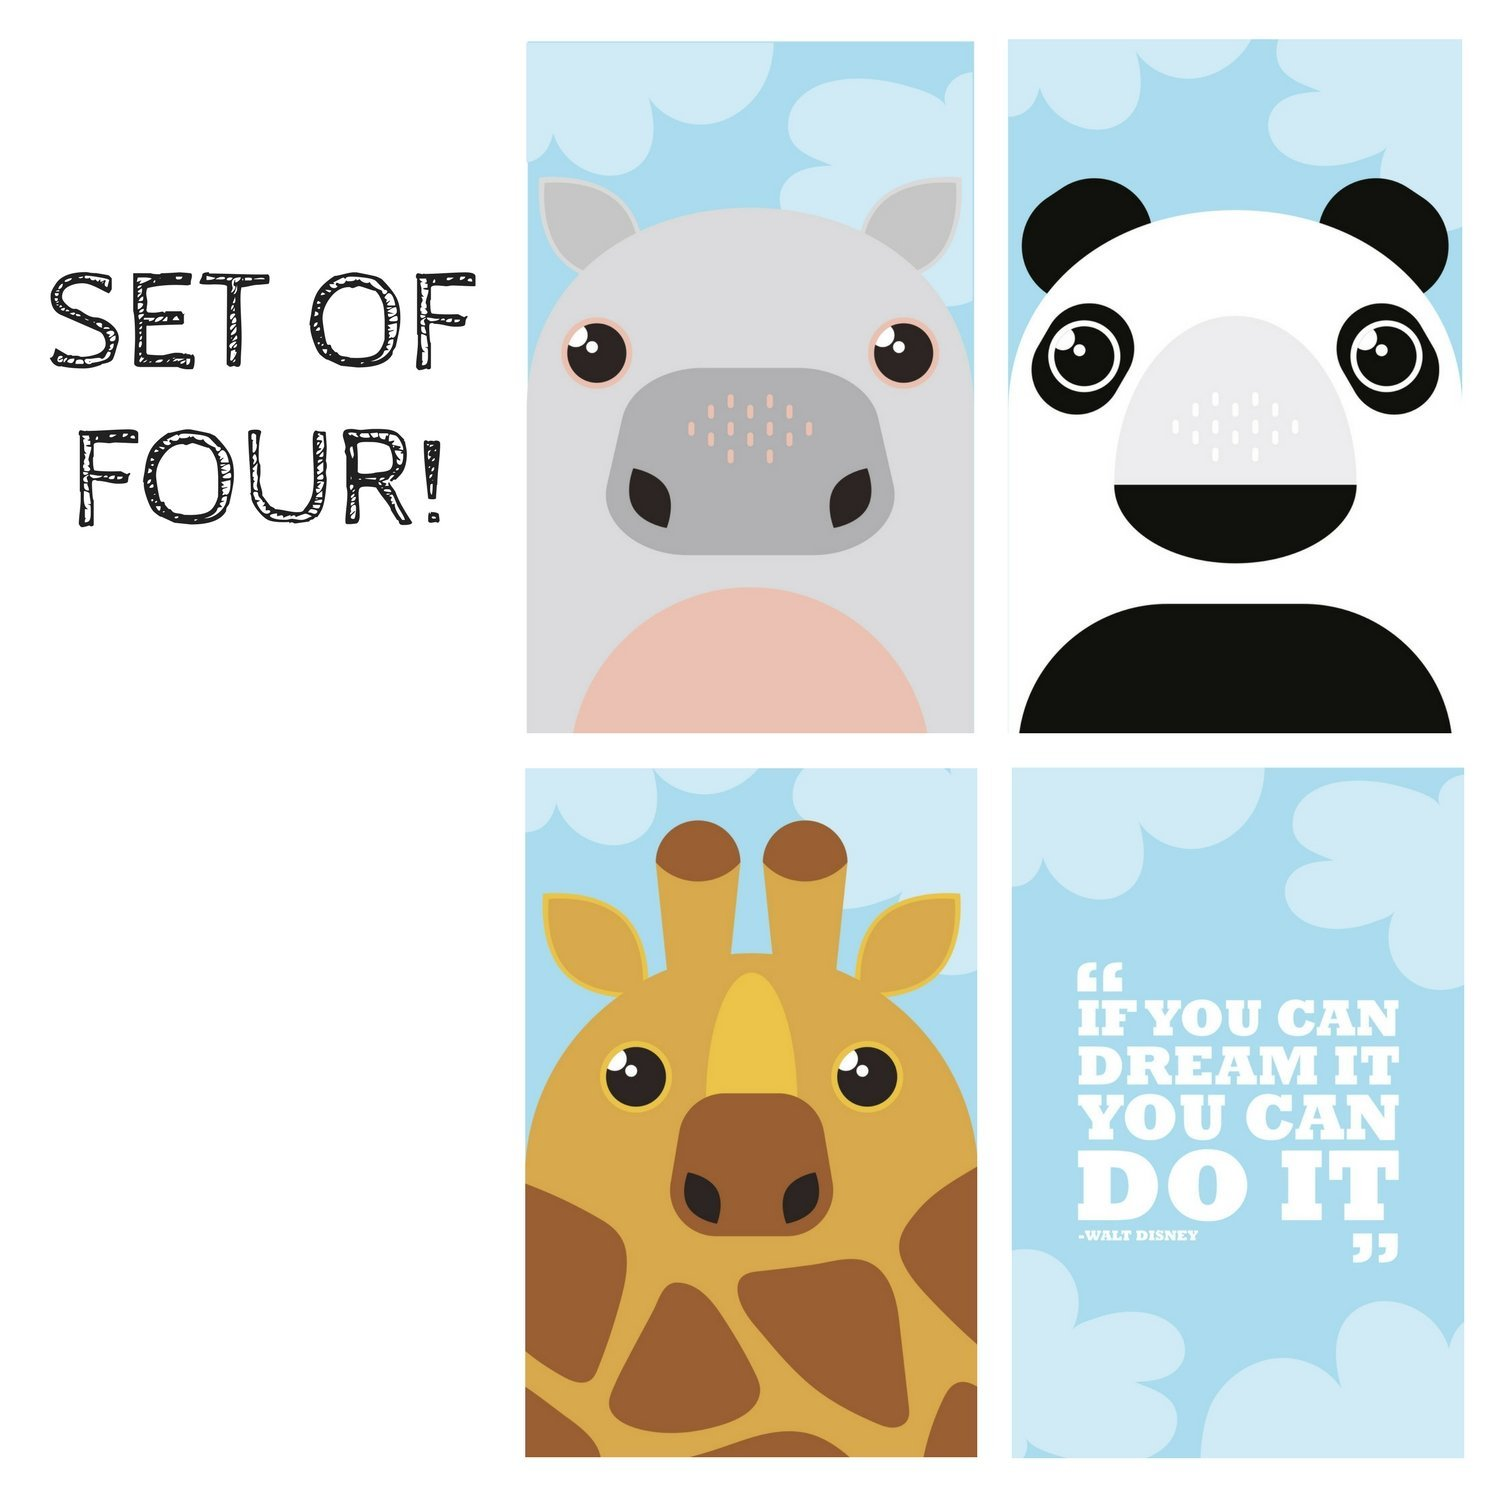 KIDS POSTERS for BEDROOM DECOR: Animal Prints For Children, Set of FOUR 11X17 Posters, Animals Wall Hangings For Nursery, Wall Decals For Baby Room. By Pillow & Toast.